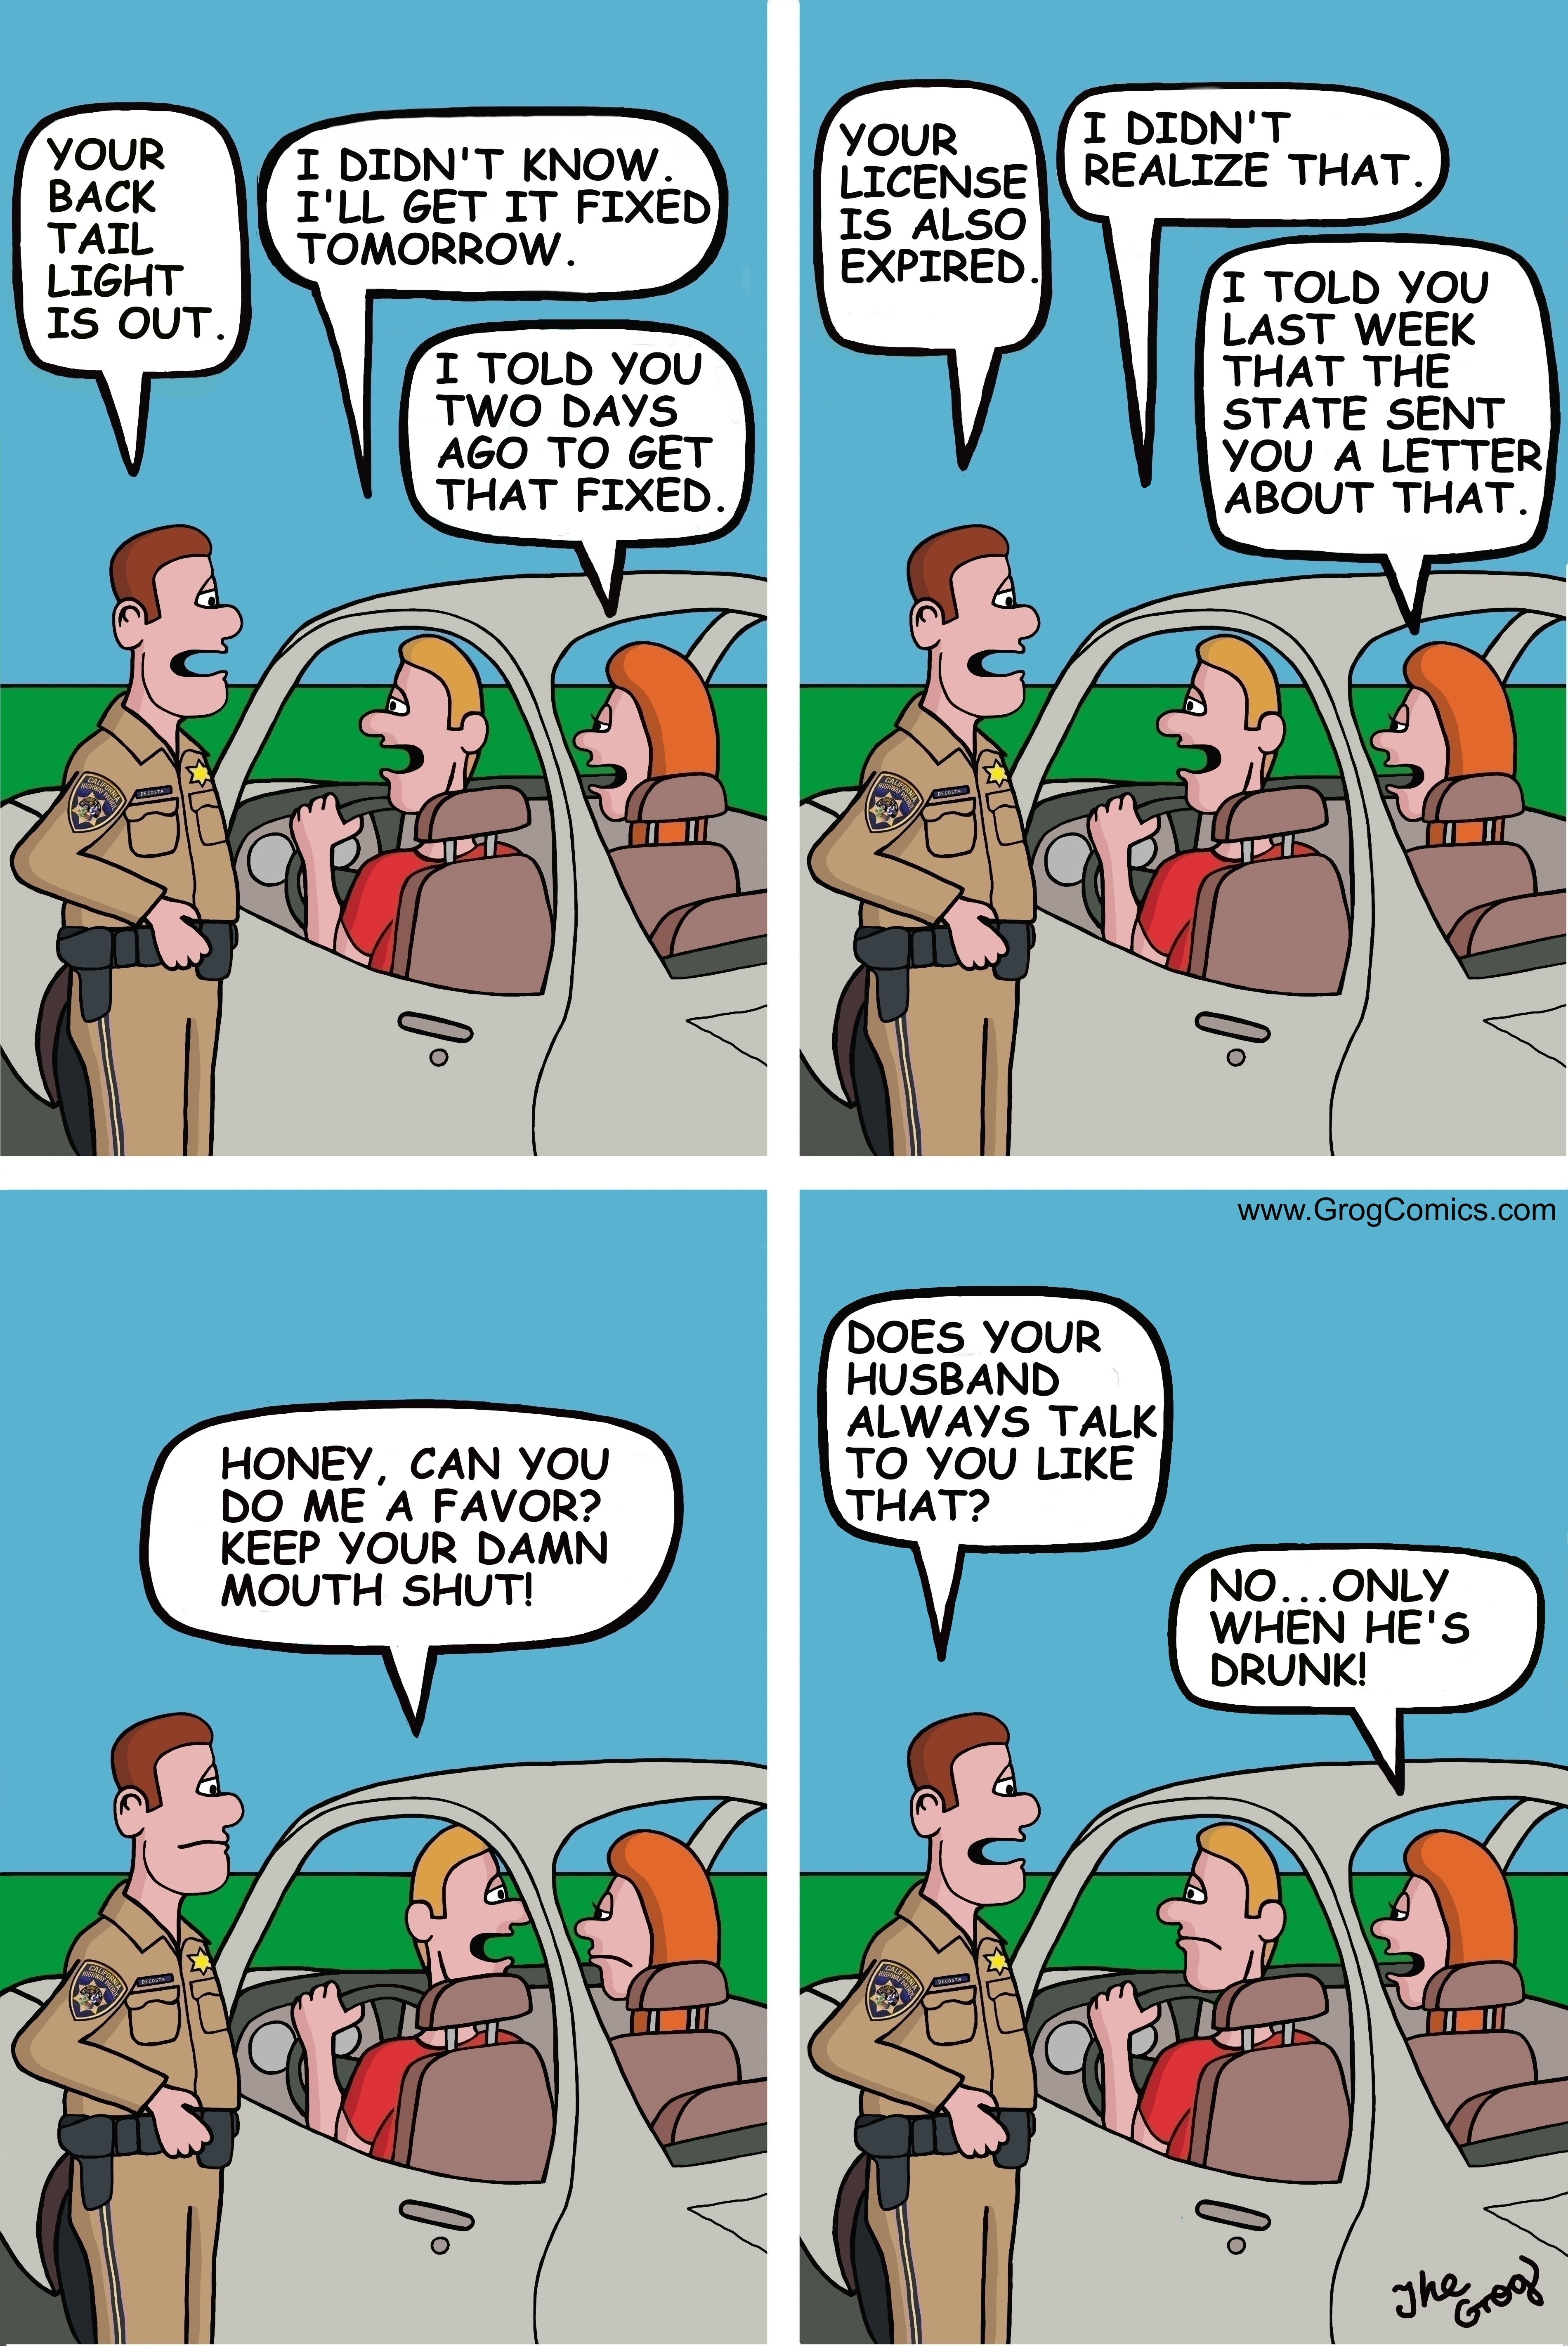 """A husband and wife get pulled over by a policeman. The husband is driving. The officer walks up to the car and says to the husband, """"Your back tail light is out"""". The husband says, """"I didn't know. I'll get it fixed tomorrow."""" """"I told you two days ago to get that fixed"""", says the wife. Your license is also expired"""", says the officer. The husband says, """"I didn't realize that"""". """"I told you last week that the state sent you a letter about that"""", says the wife. The husband is now getting very upset about his wife's interruptions. He says, """"Honey, can you do me a favor? Keep your damn mouth shut!"""" The officer says to the wife, """"Does your husband always talk to you like that?"""" """"No"""", says the wife, """"only when he's drunk."""""""